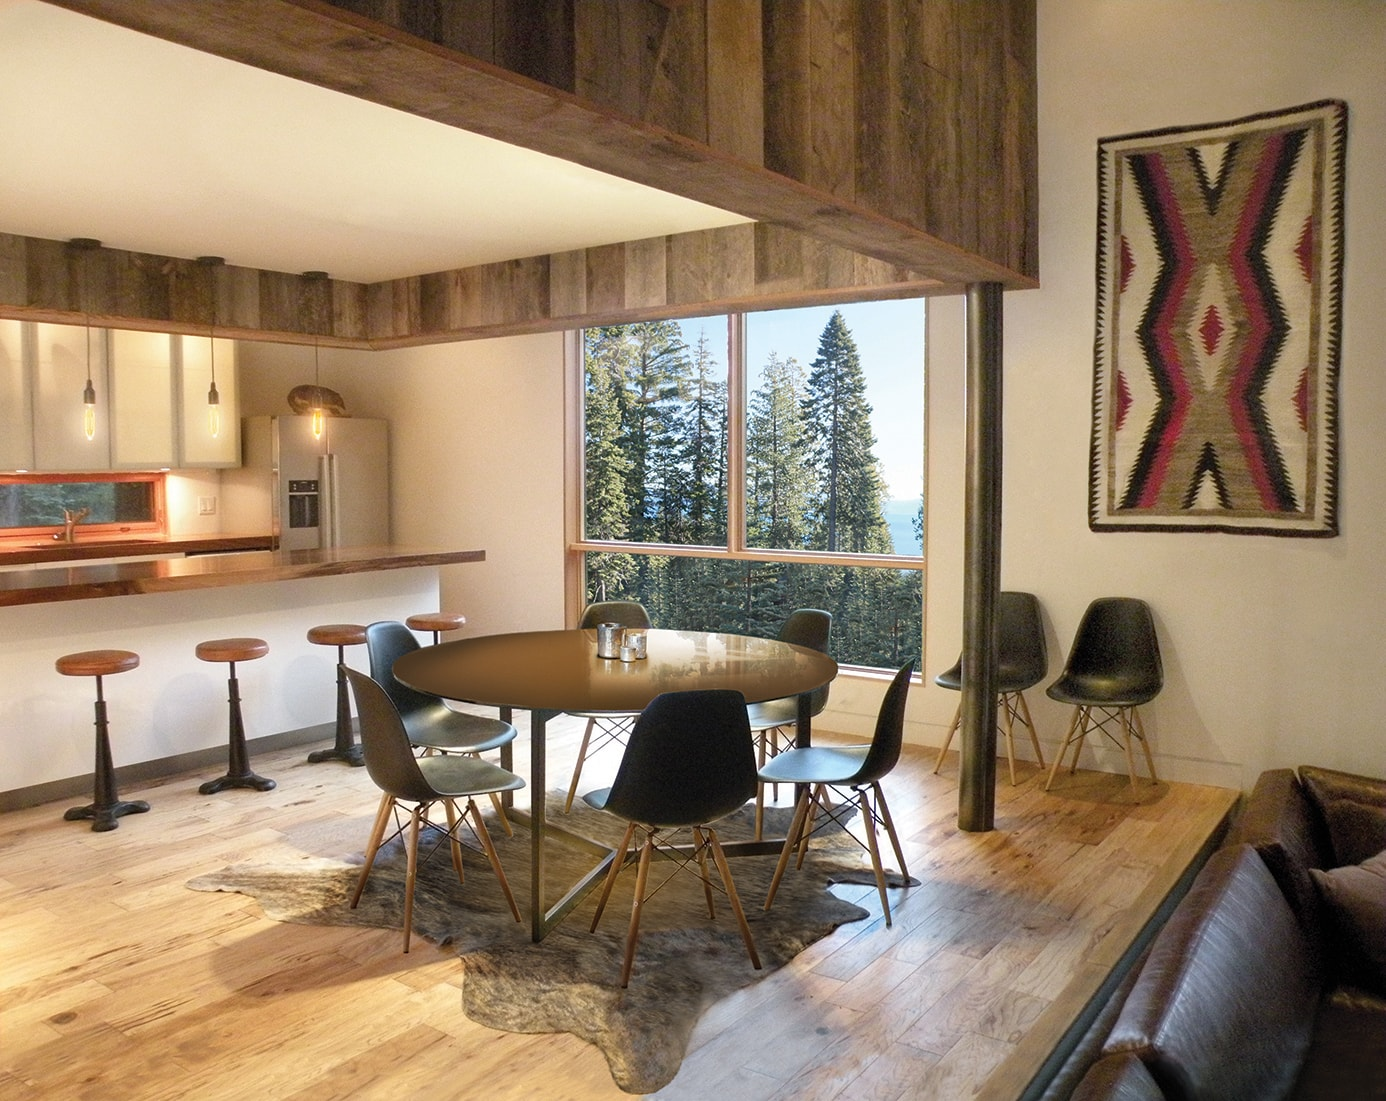 Lake Tahoe Residence by Quezada Architecture (Fred Quezada, Cecilia Quezada, Ed Tingley)